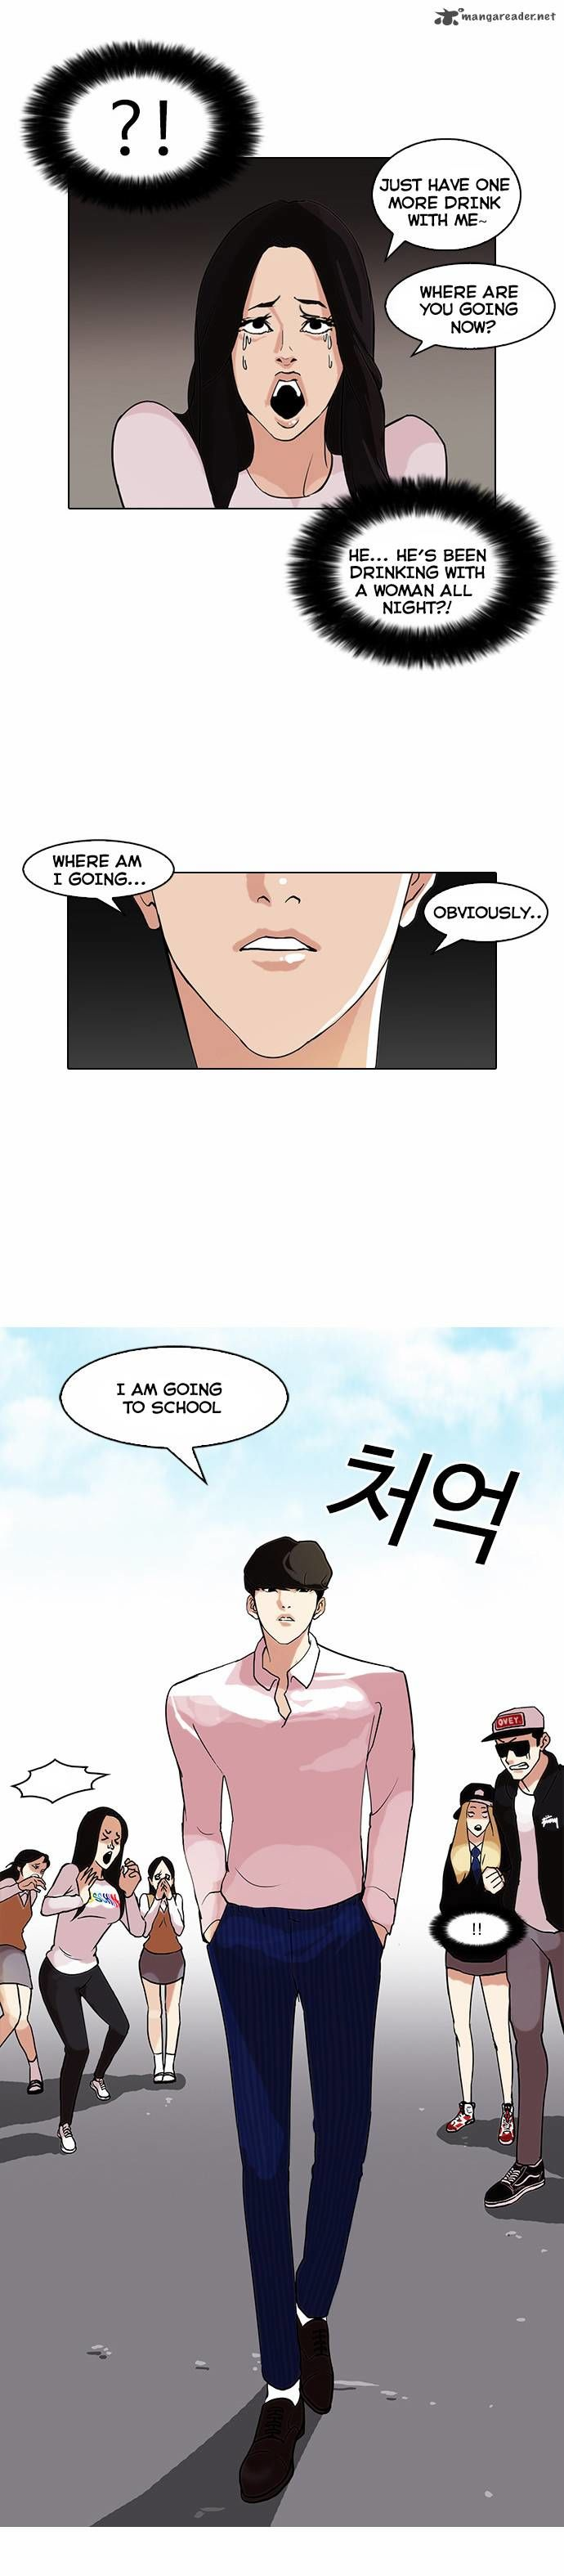 Lookism 78 Page 2